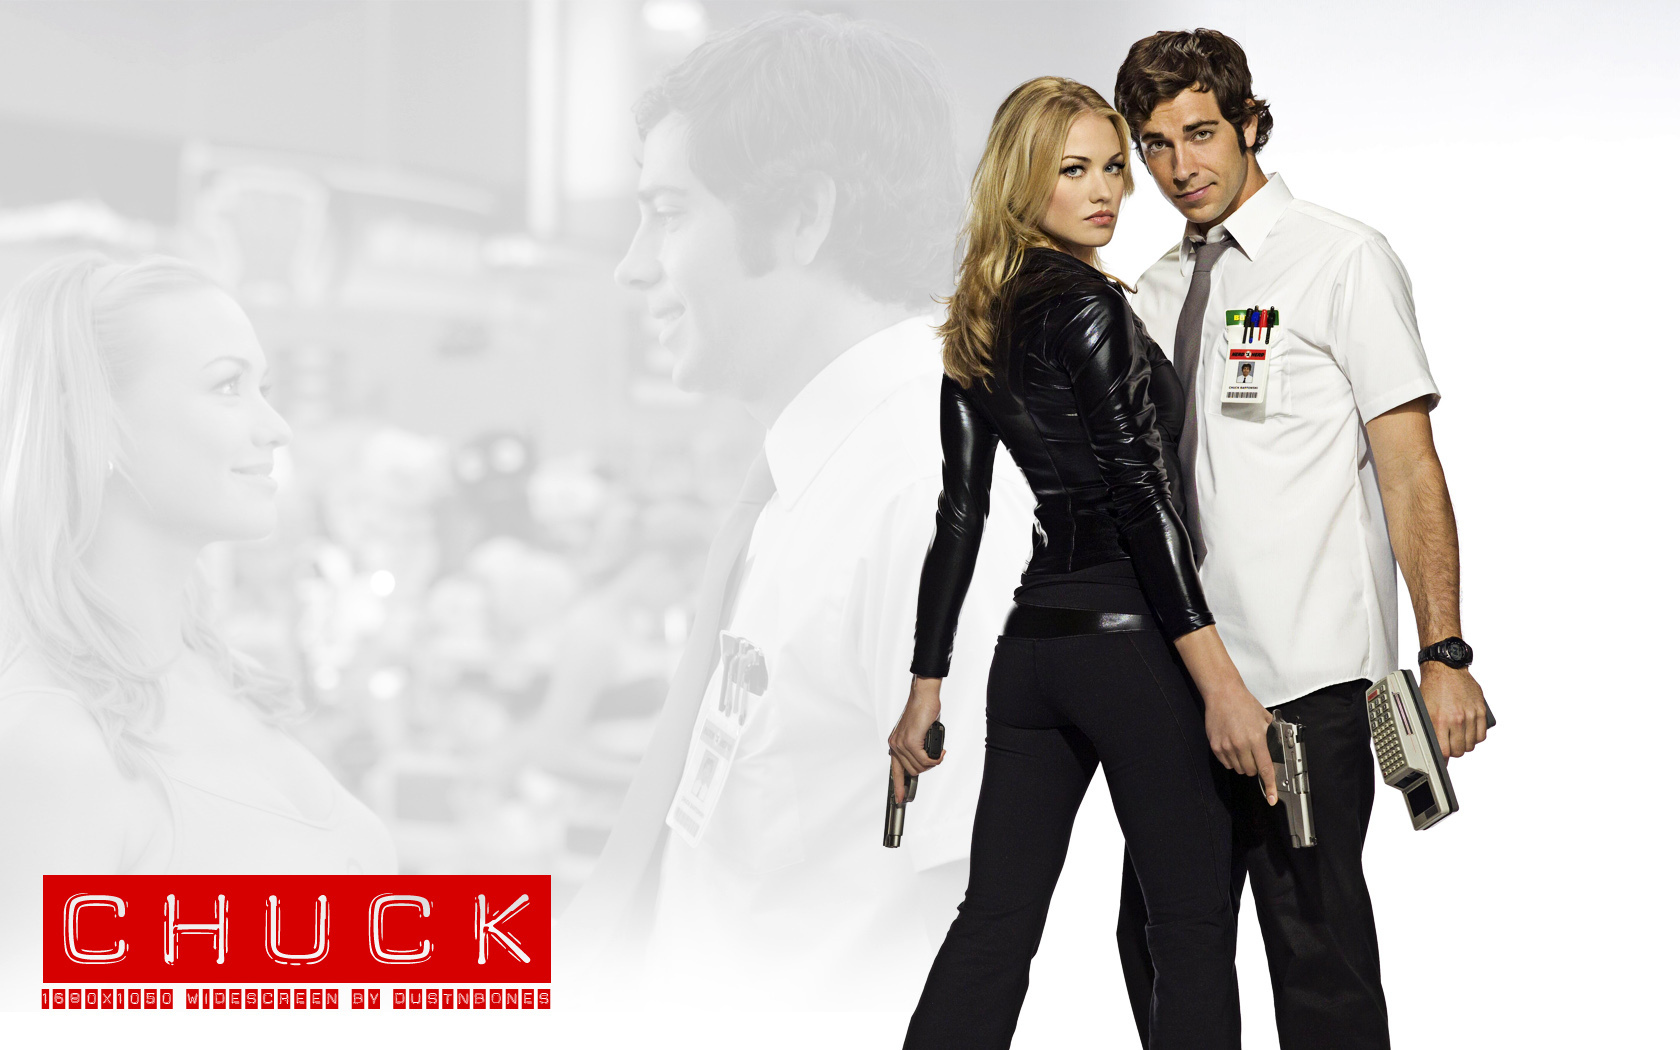 Chuck &amp; Sarah